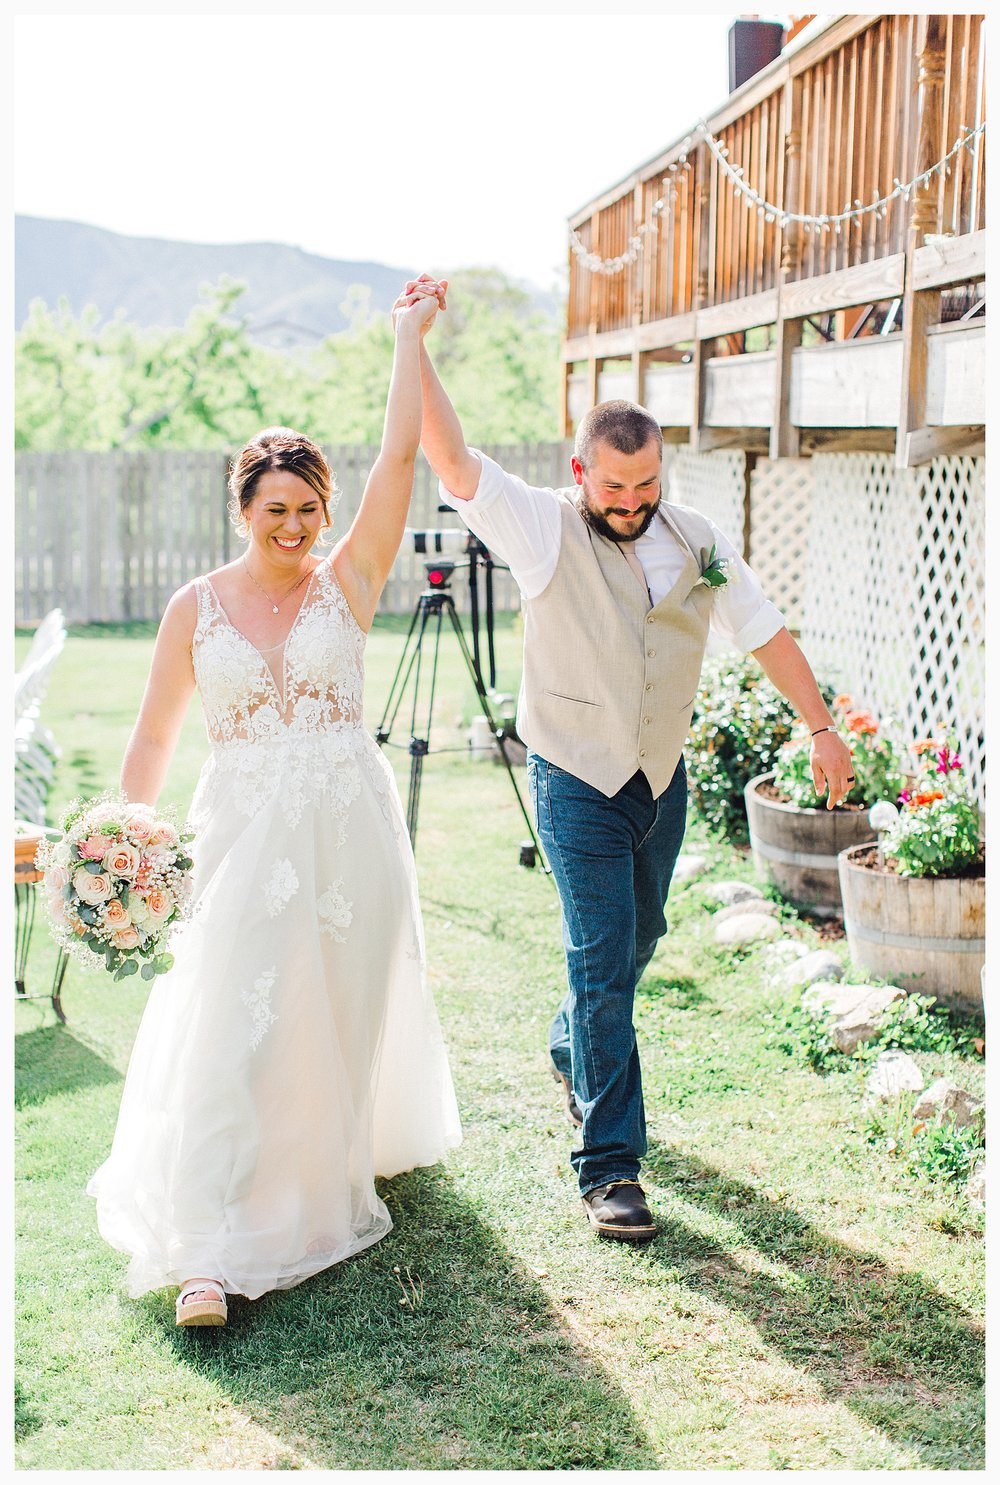 Rustic barn wedding in Wenatchee Washington at Sunshine Ranch on Easy Street, Emma Rose Company Seattle PNW Light and Airy Wedding Photographer_0069.jpg